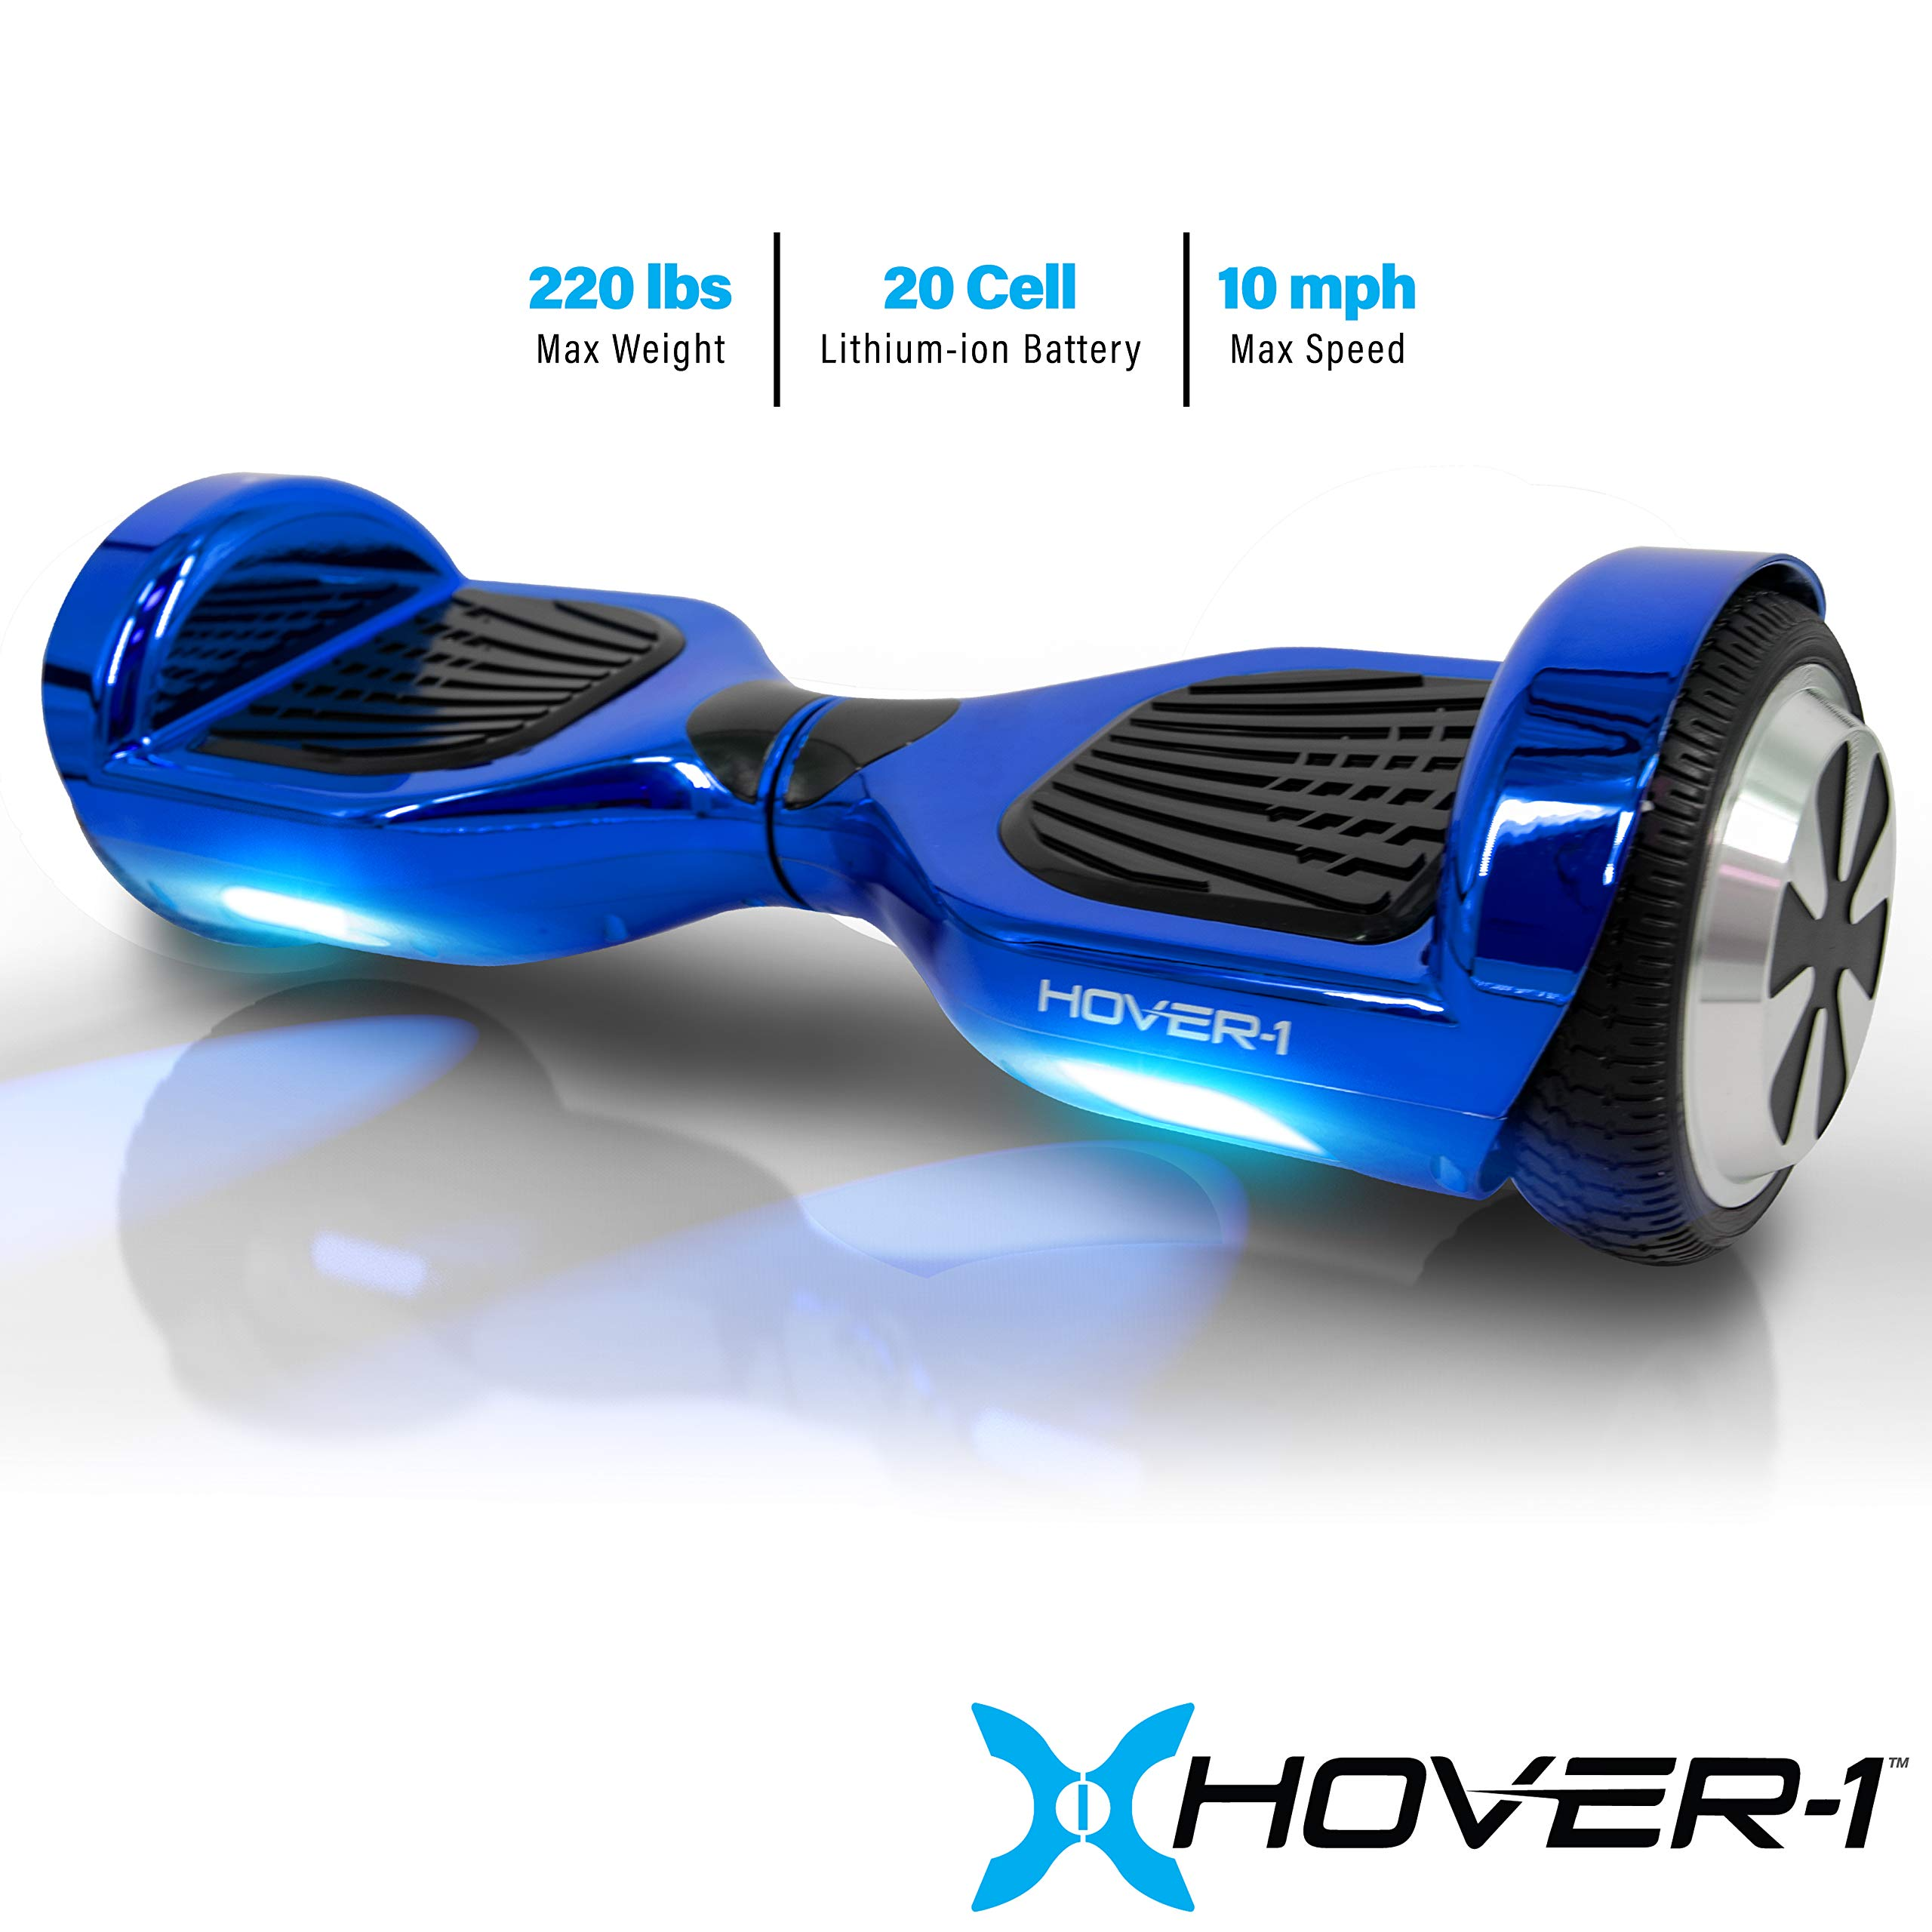 Hover-1 Ultra Hoverboard Electric Scooter